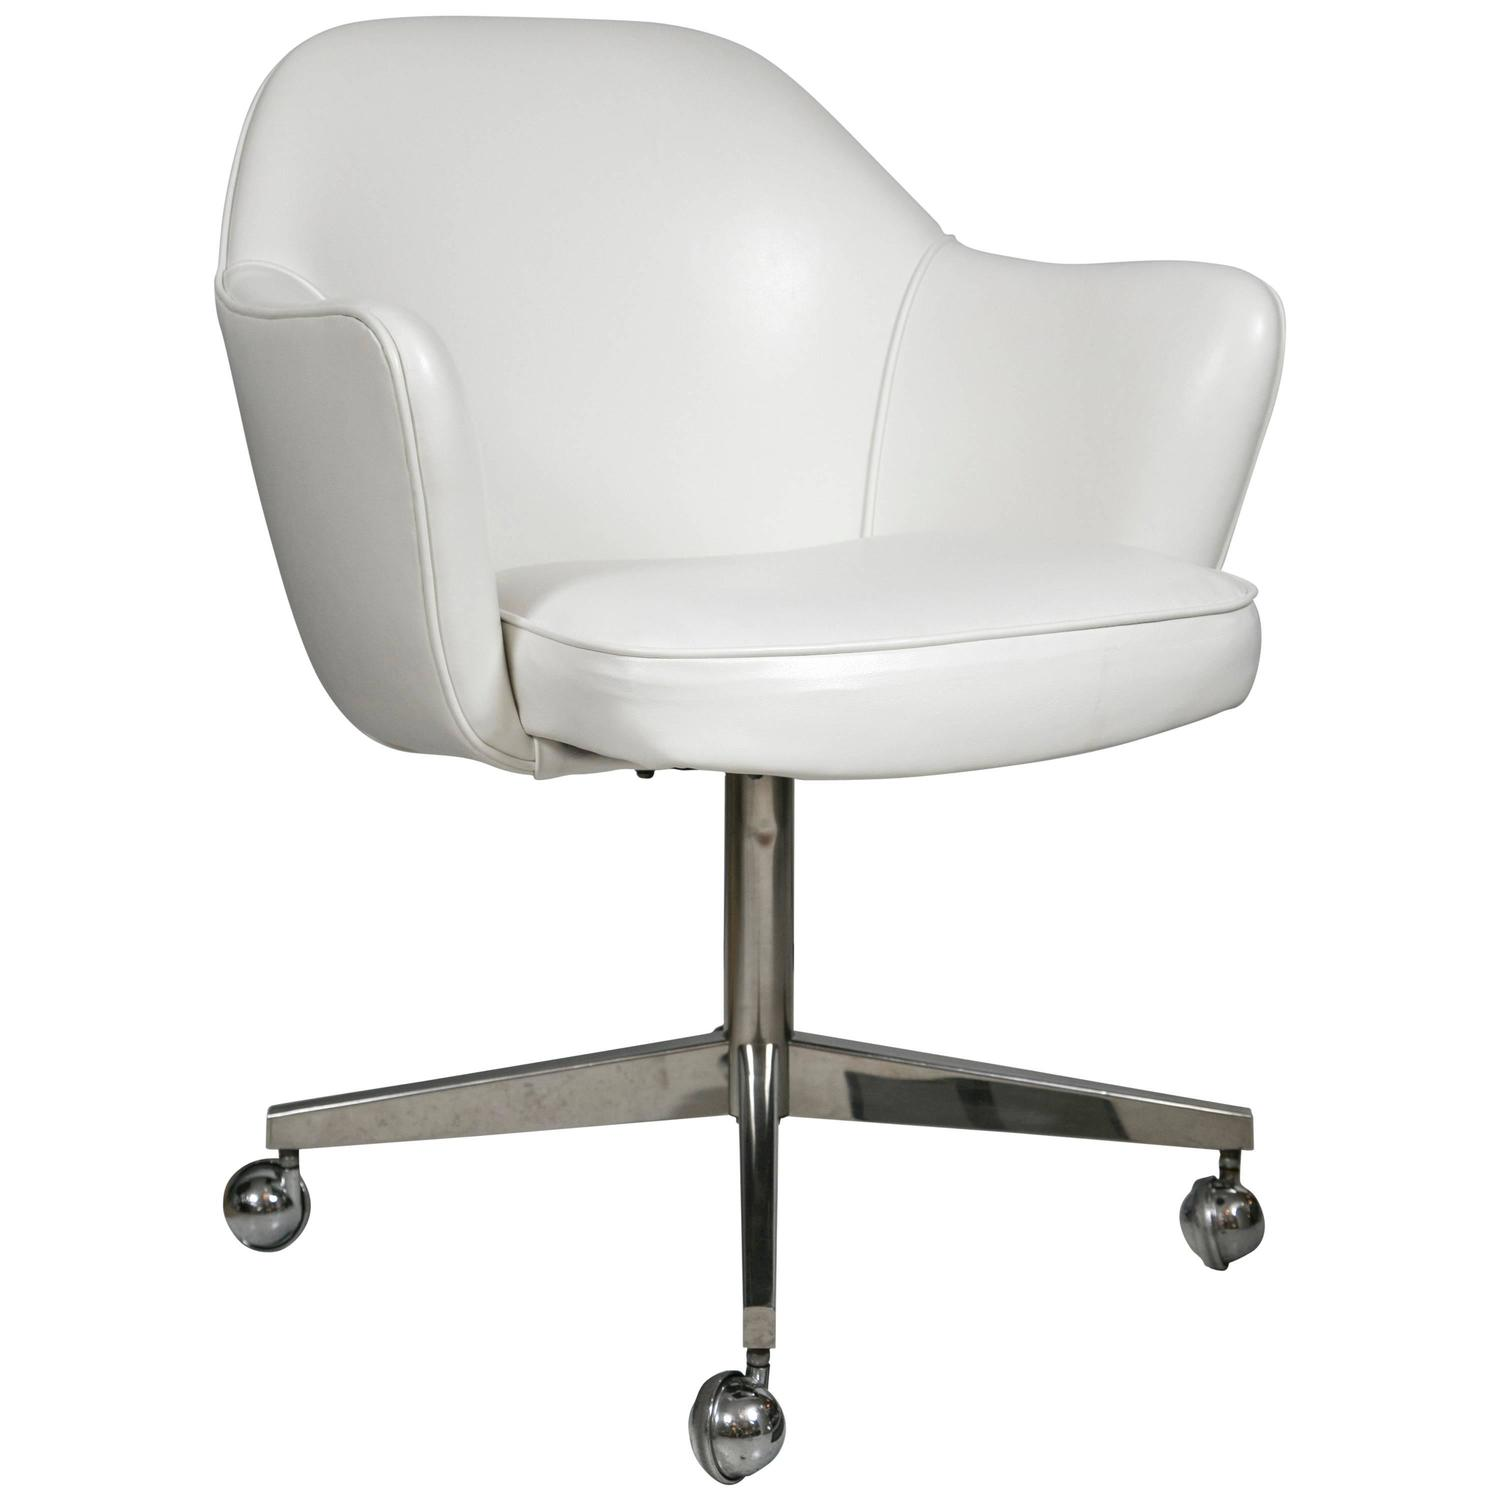 white leather chairs for sale dining room chair covers on knoll desk in at 1stdibs